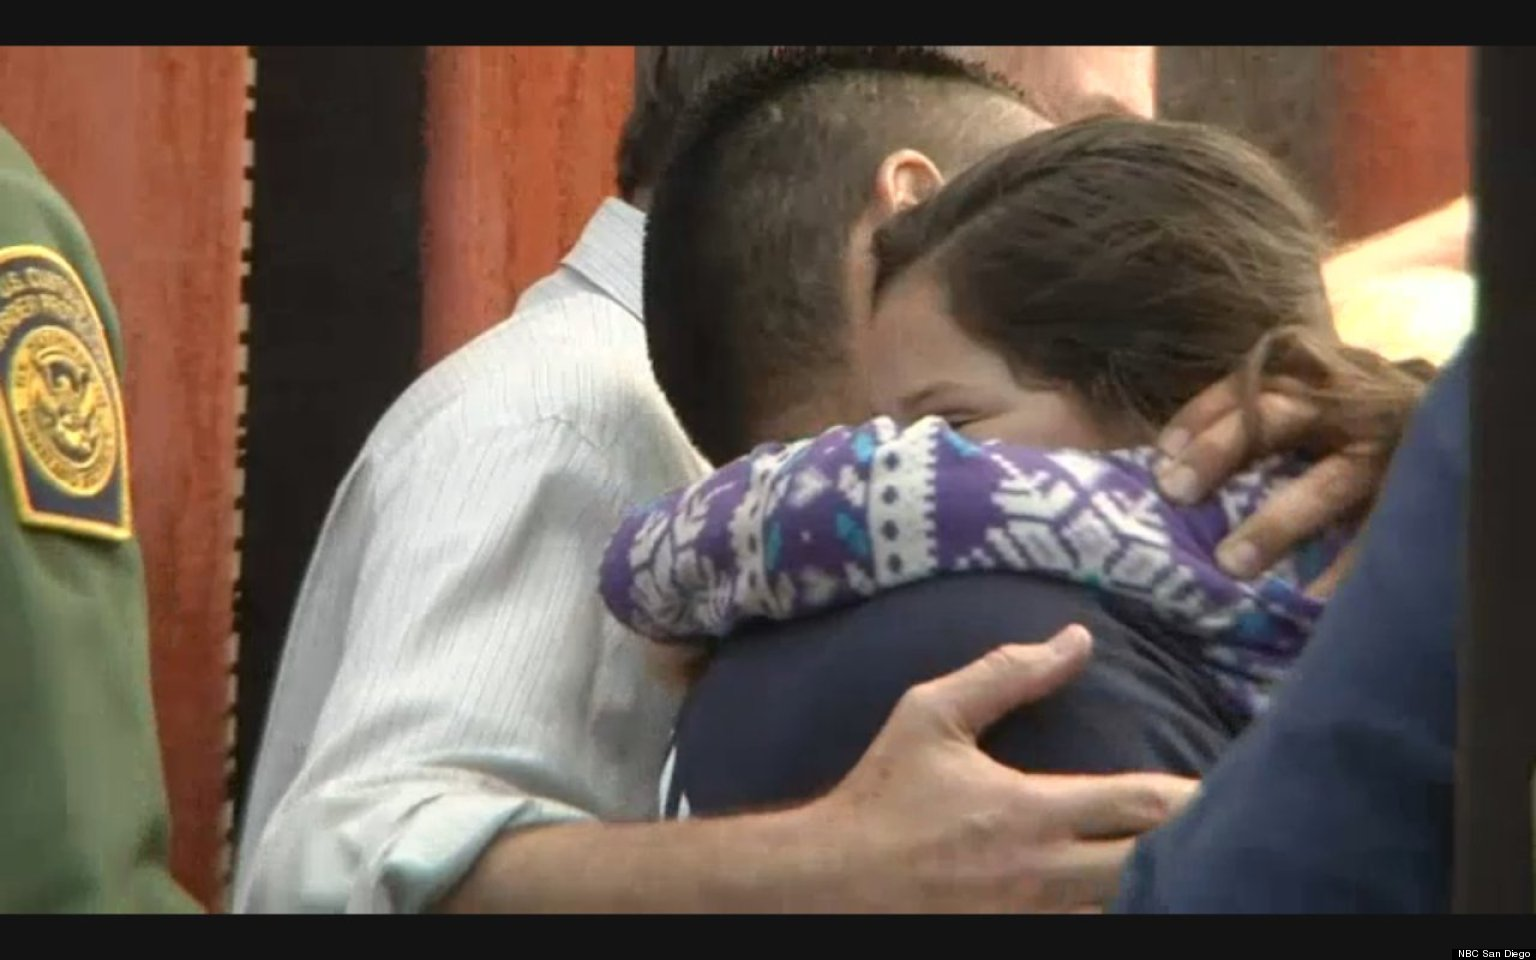 WATCH: Immigrant Dad Hugs Daughter For First Time In Emotional Border Scene